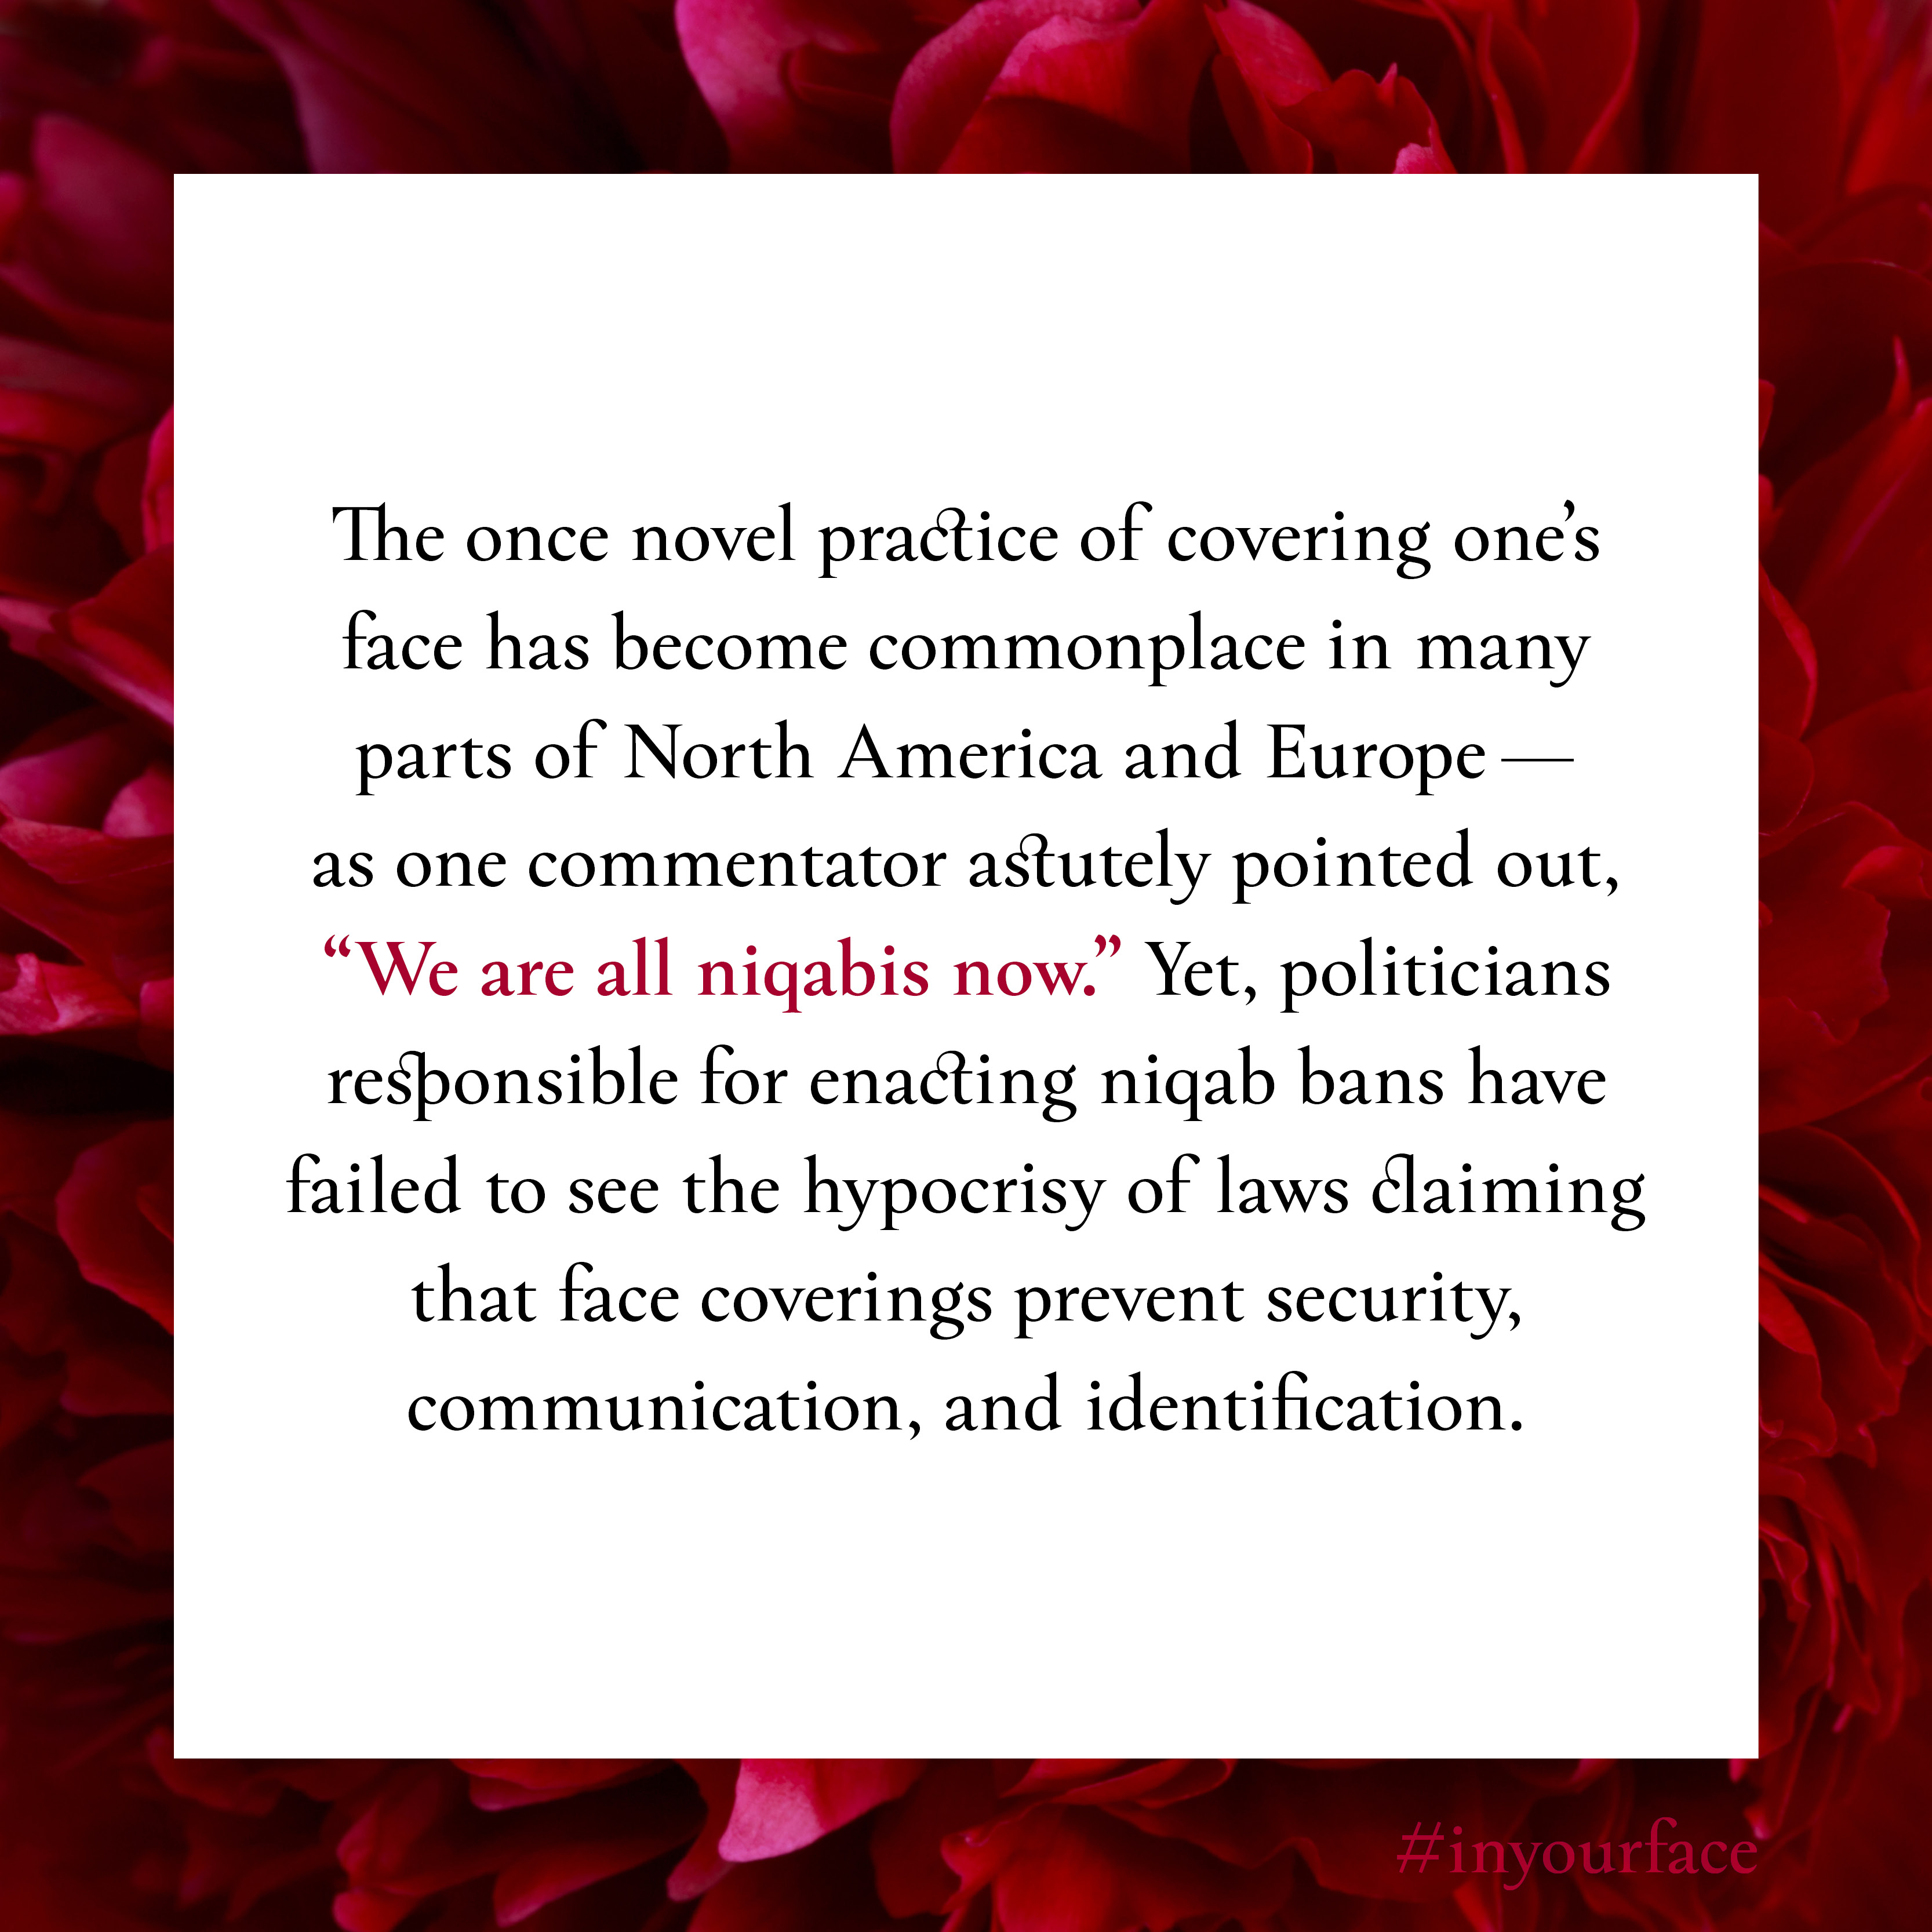 """Excerpt from In Your Face by Natasha Bakht. It reads: """"The once novel practice of covering one's face has become commonplace in many parts of North America and Europe— as one commentator astutely pointed out, """"We are all niqabis now."""" Yet, politicians responsible for enacting niqab bans have failed to see the hypocrisy of laws claiming that face coverings prevent security, communication, and identification."""""""